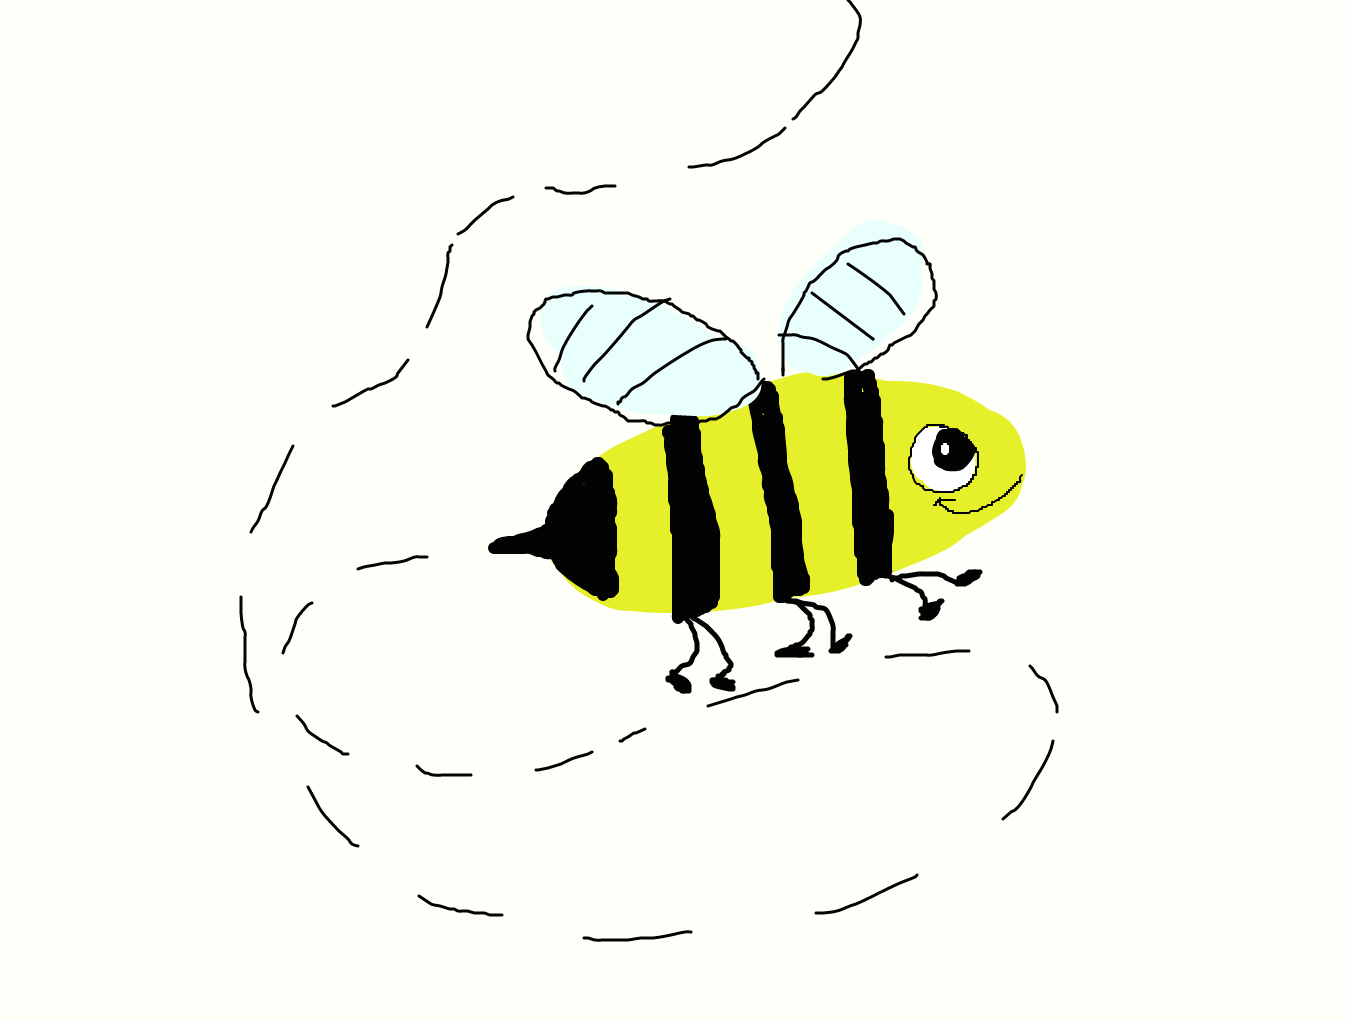 Uncategorized Draw A Bumble Bee forum draw a bumblebee please deviantart untitled drawing by painted flamingo